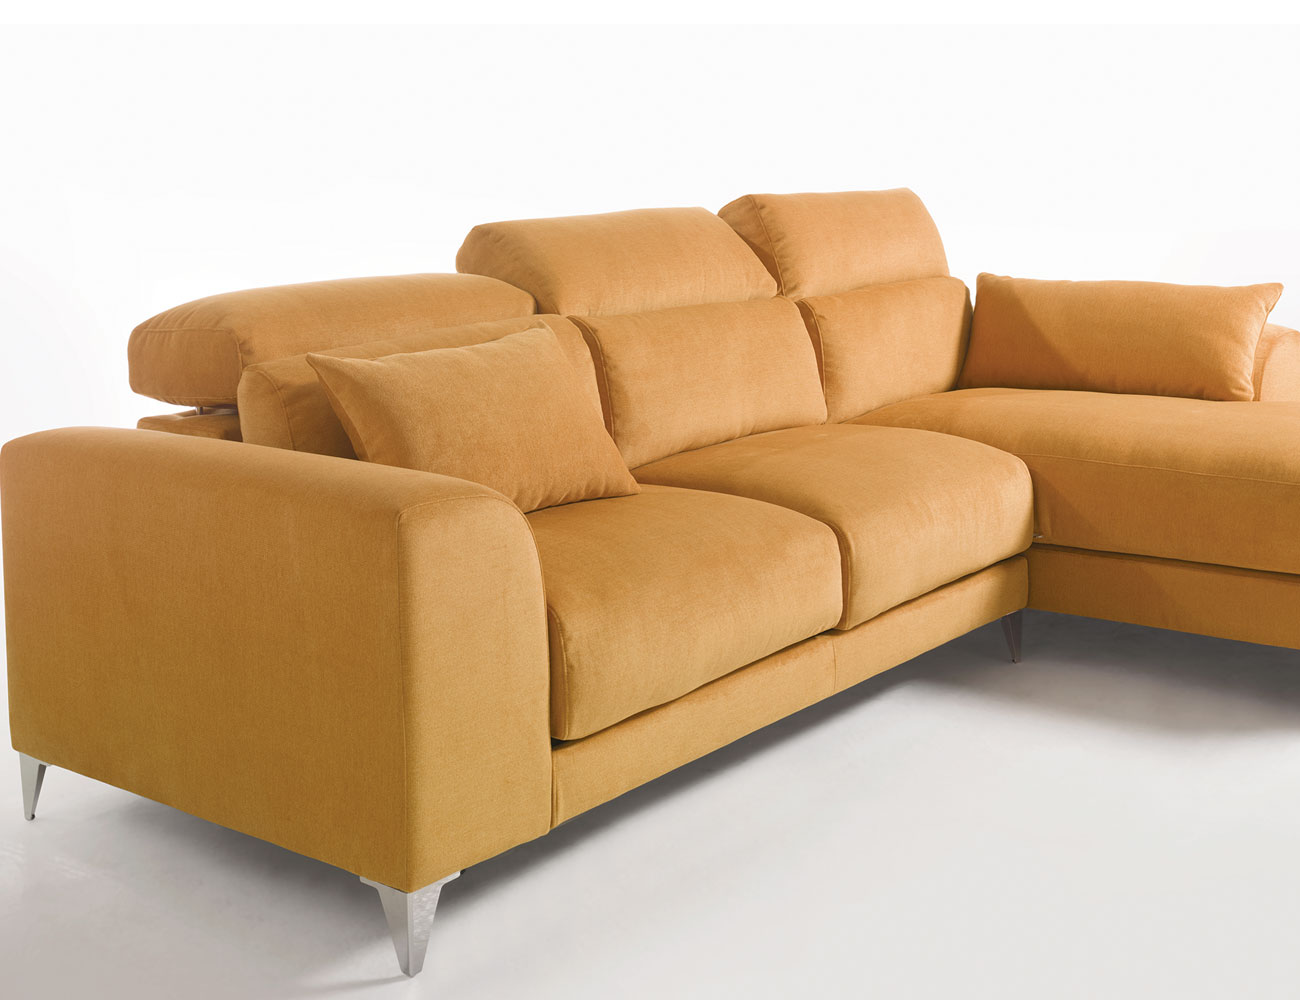 Sofa chaiselongue gran lujo decorativo patas altas amarillo 245